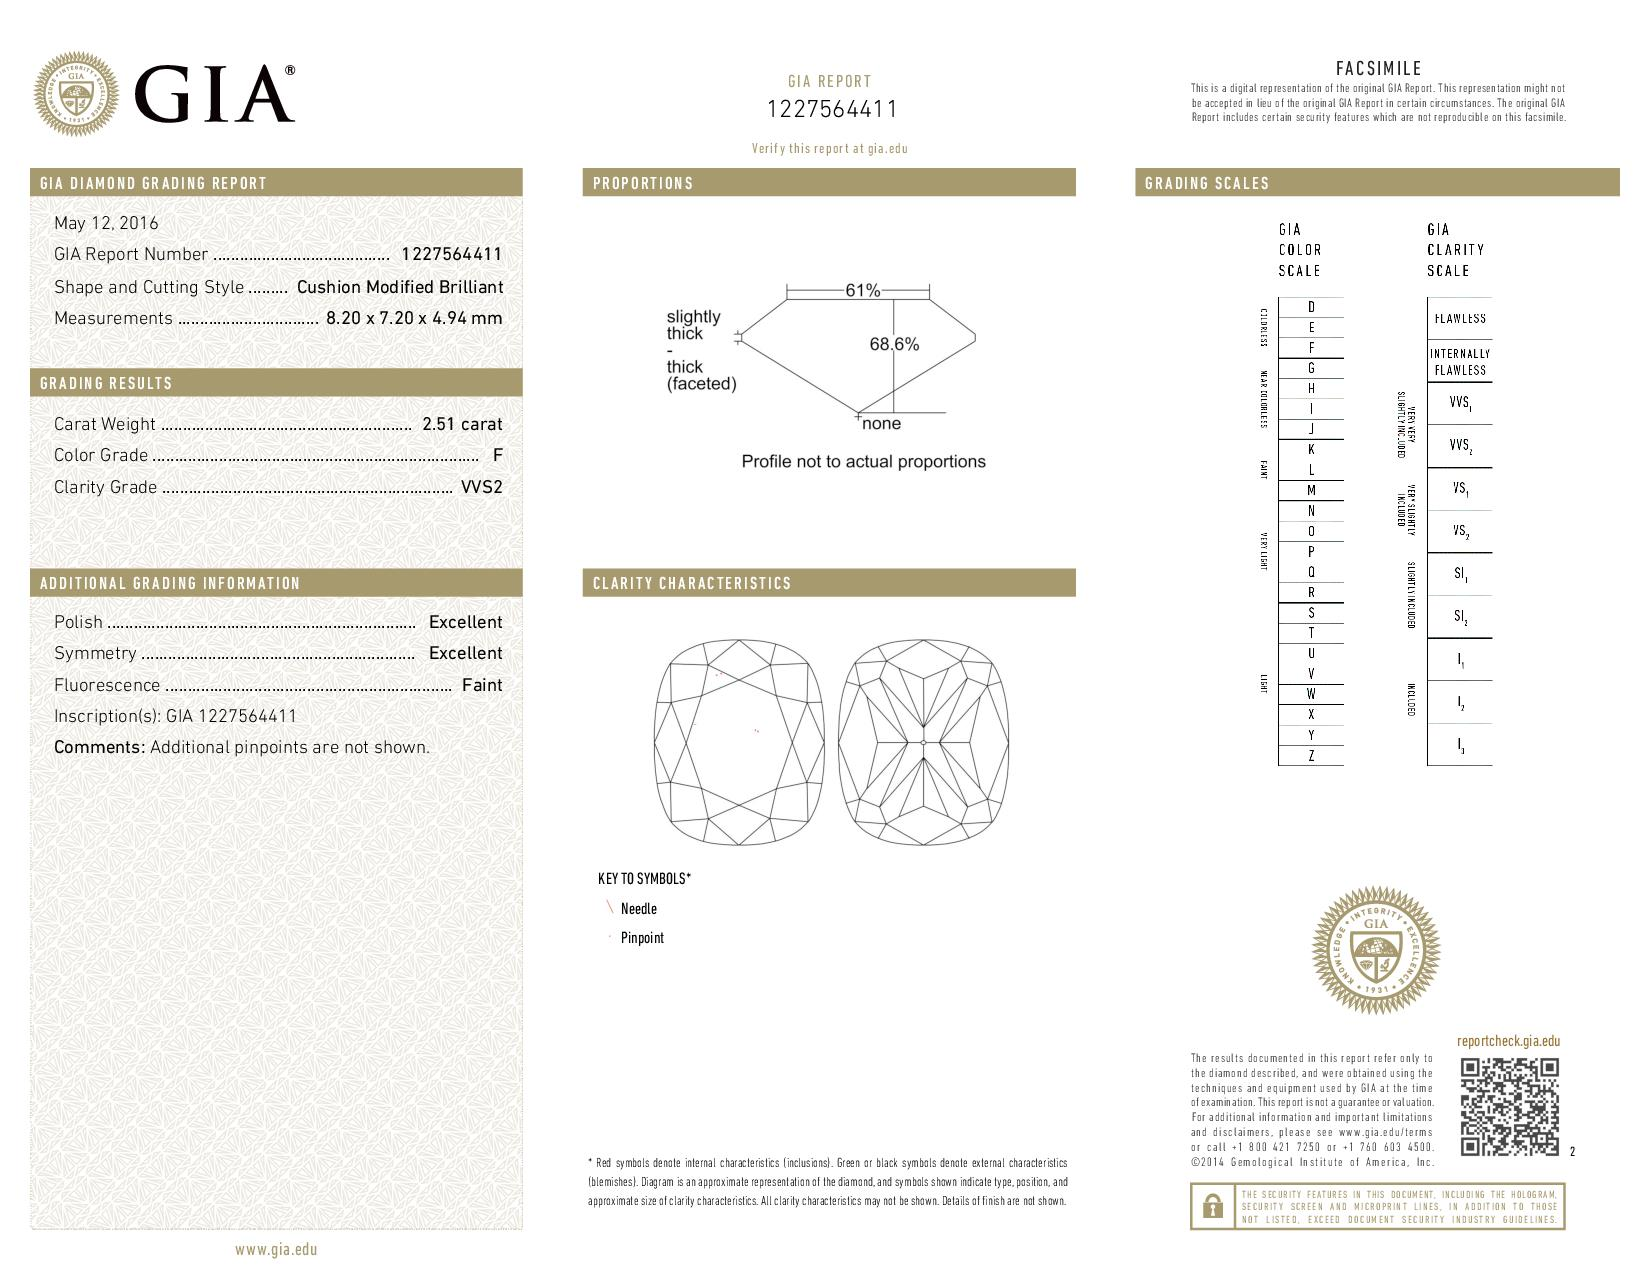 This is a 2.51 carat cushion shape, F color, VVS2 clarity natural diamond accompanied by a GIA grading report.